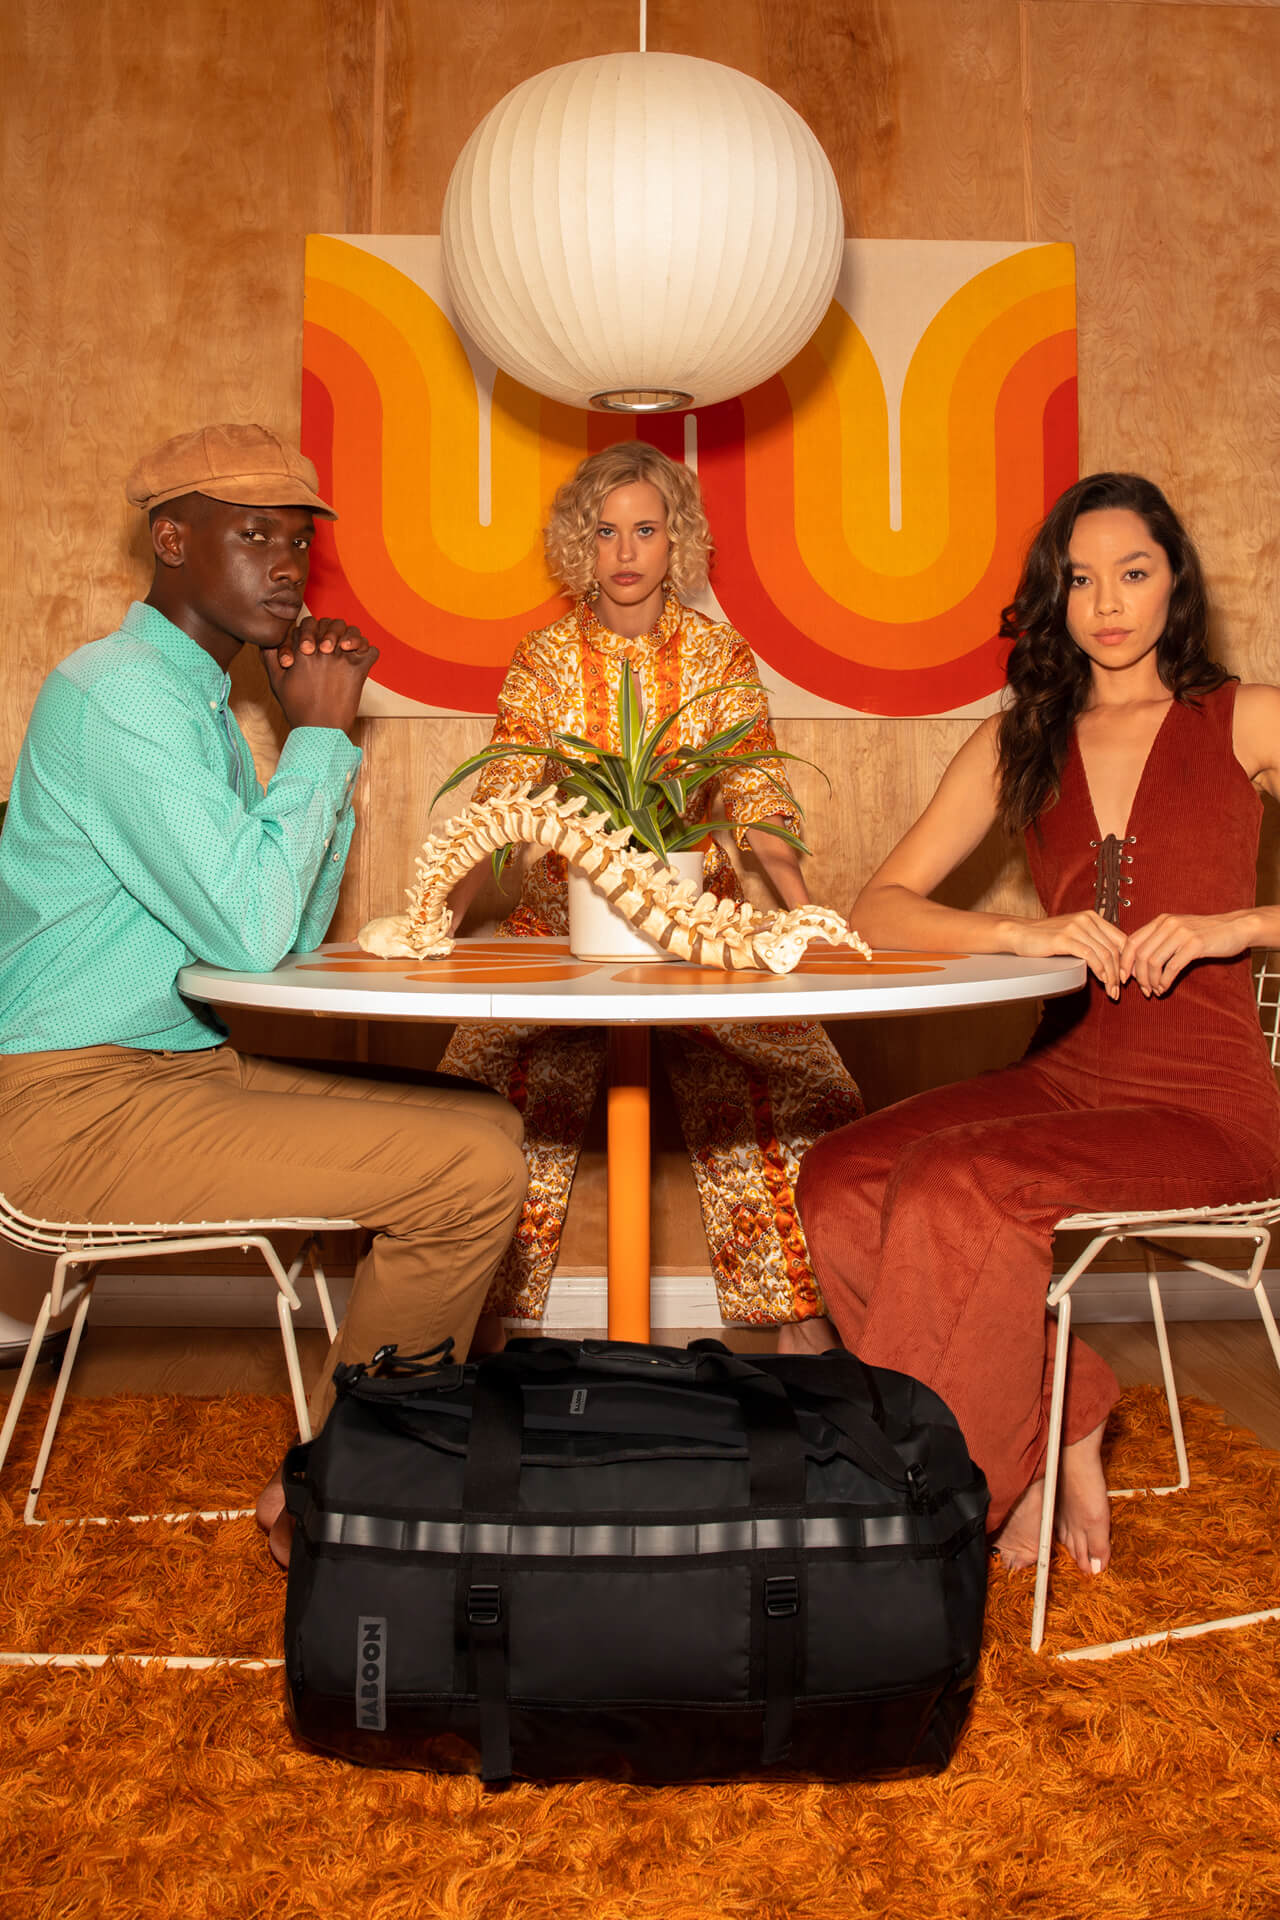 edge to edge image of 3 people sitting at a table with black BABOON bag on the floor